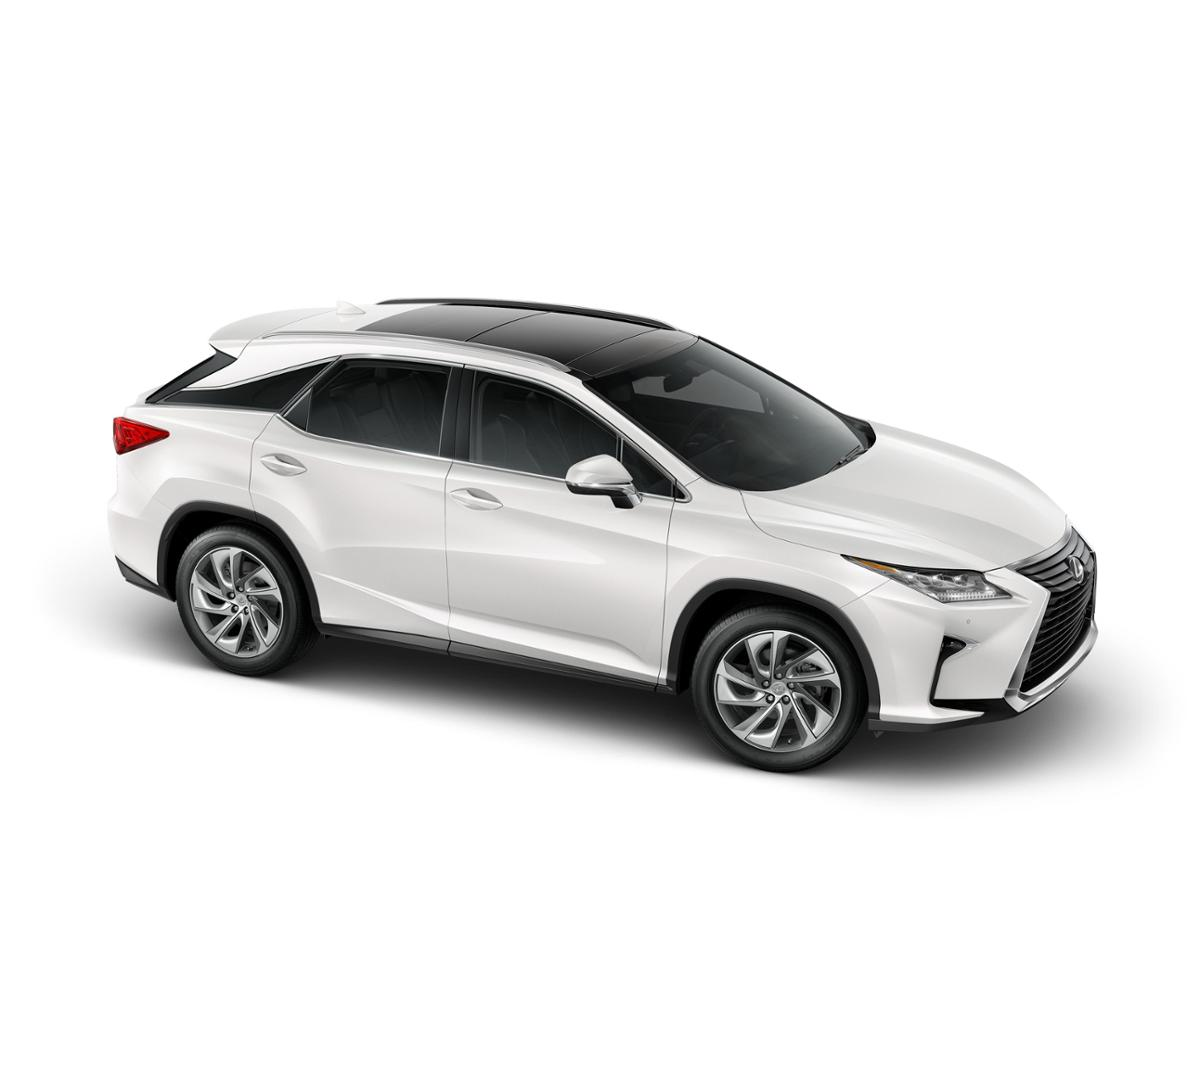 2017 lexus rx 350 for sale in schaumburg 2t2bzmca7hc070862 woodfield lexus. Black Bedroom Furniture Sets. Home Design Ideas